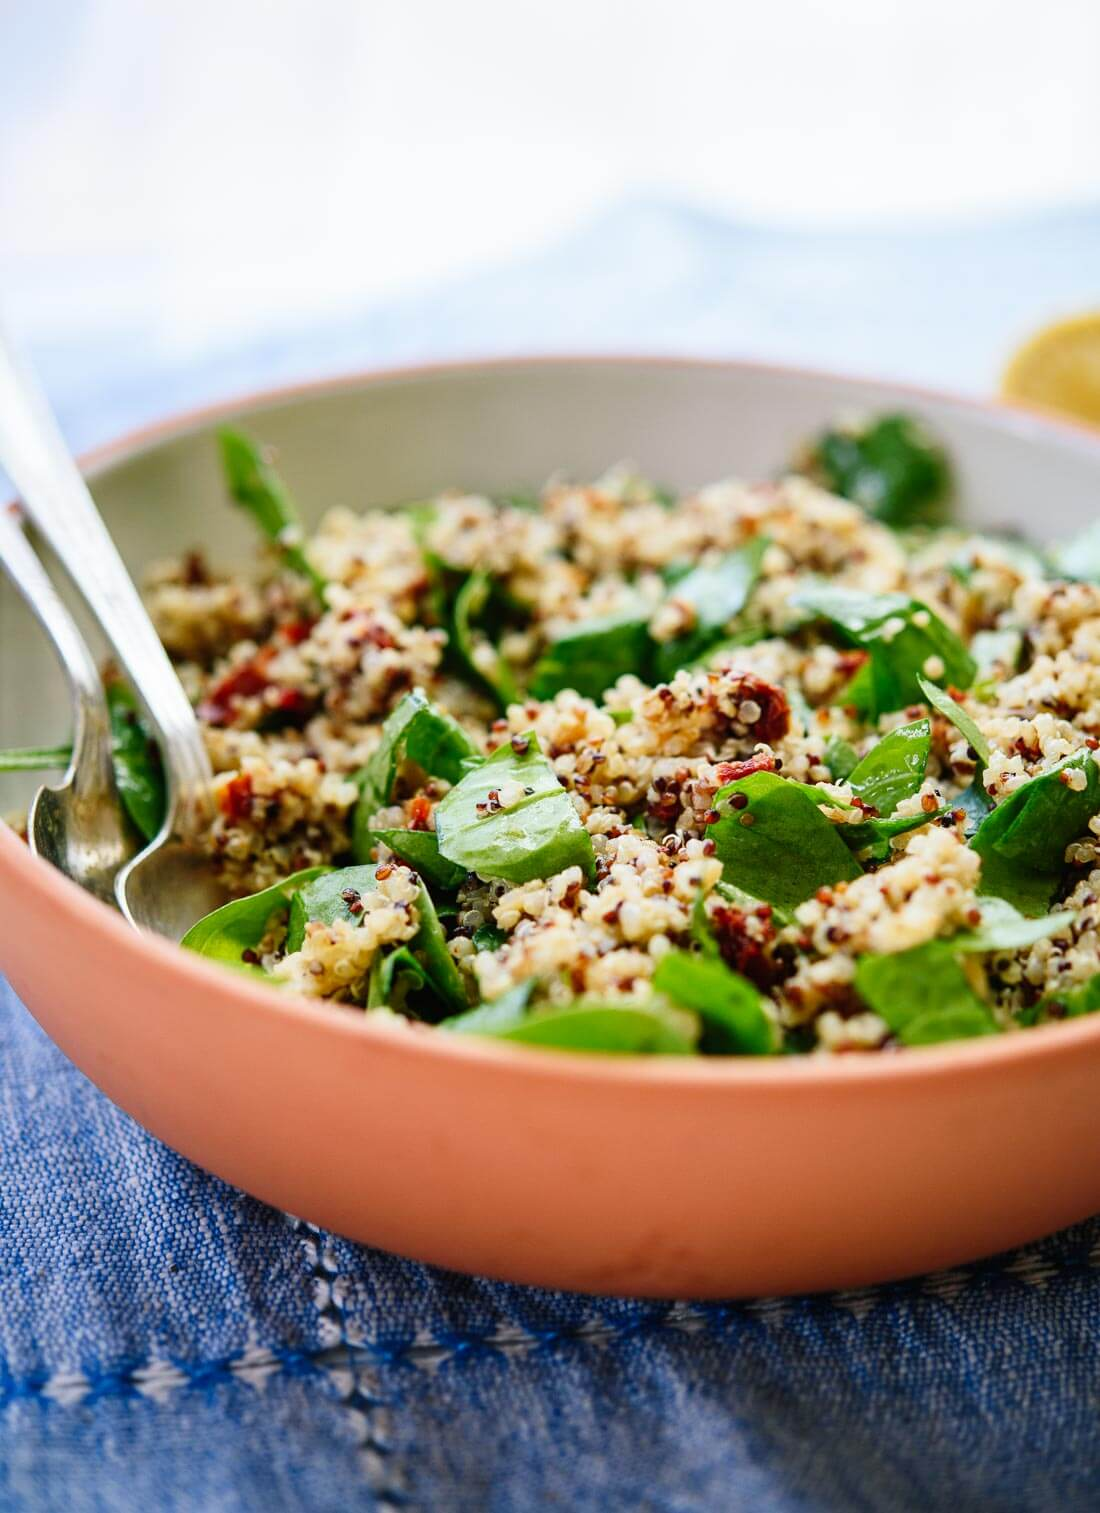 Sun-dried tomato, spinach and quinoa salad recipe - cookieandkate.com